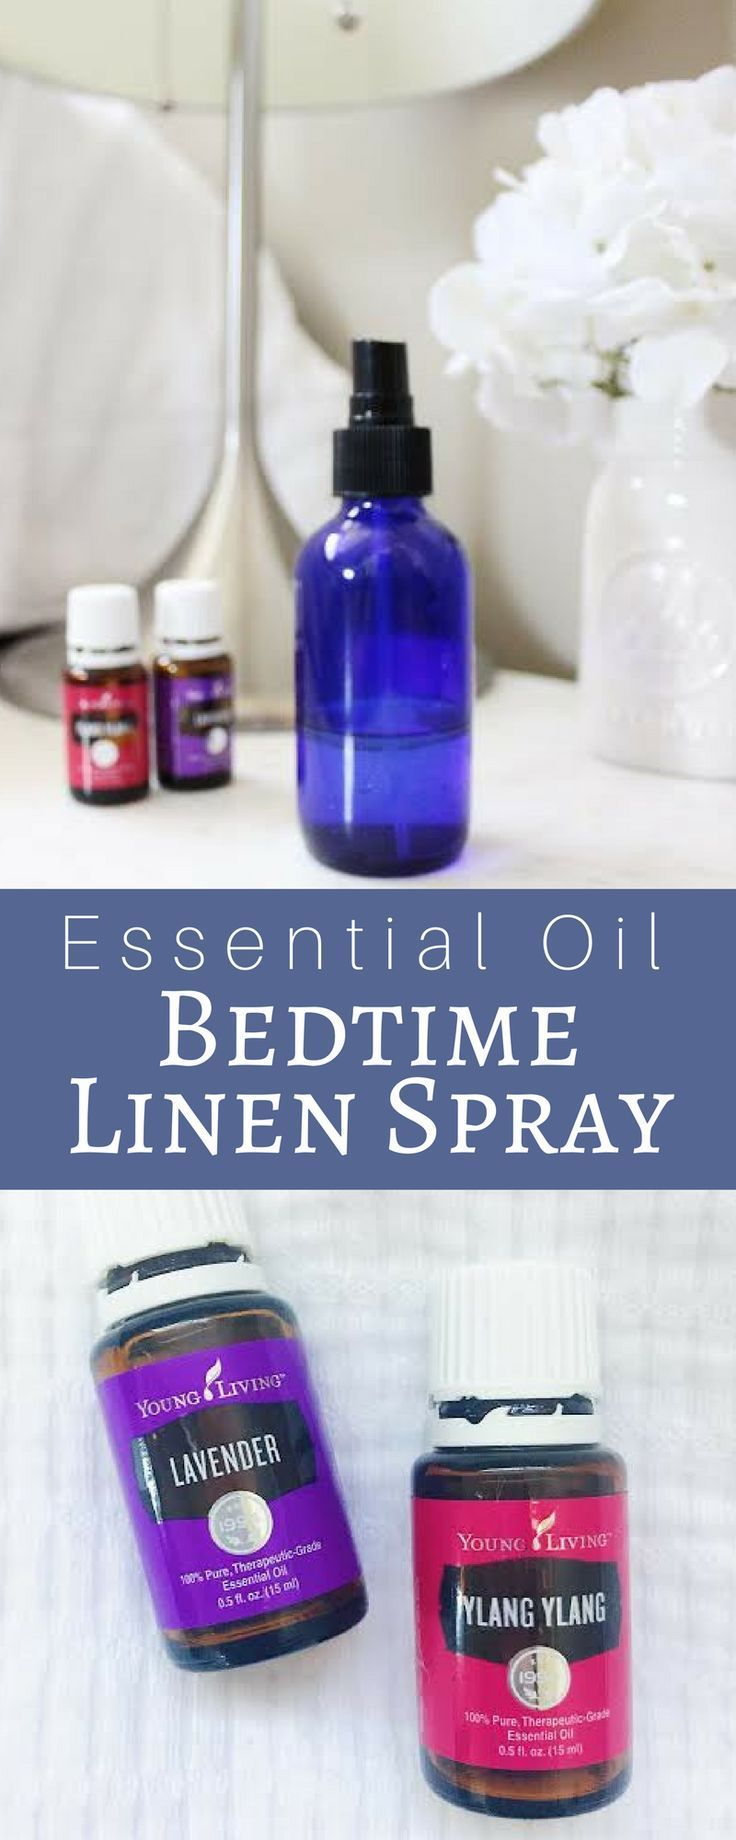 Essential Oils Bedtime Linen Spray with Lavender and Ylang Ylang for sleep